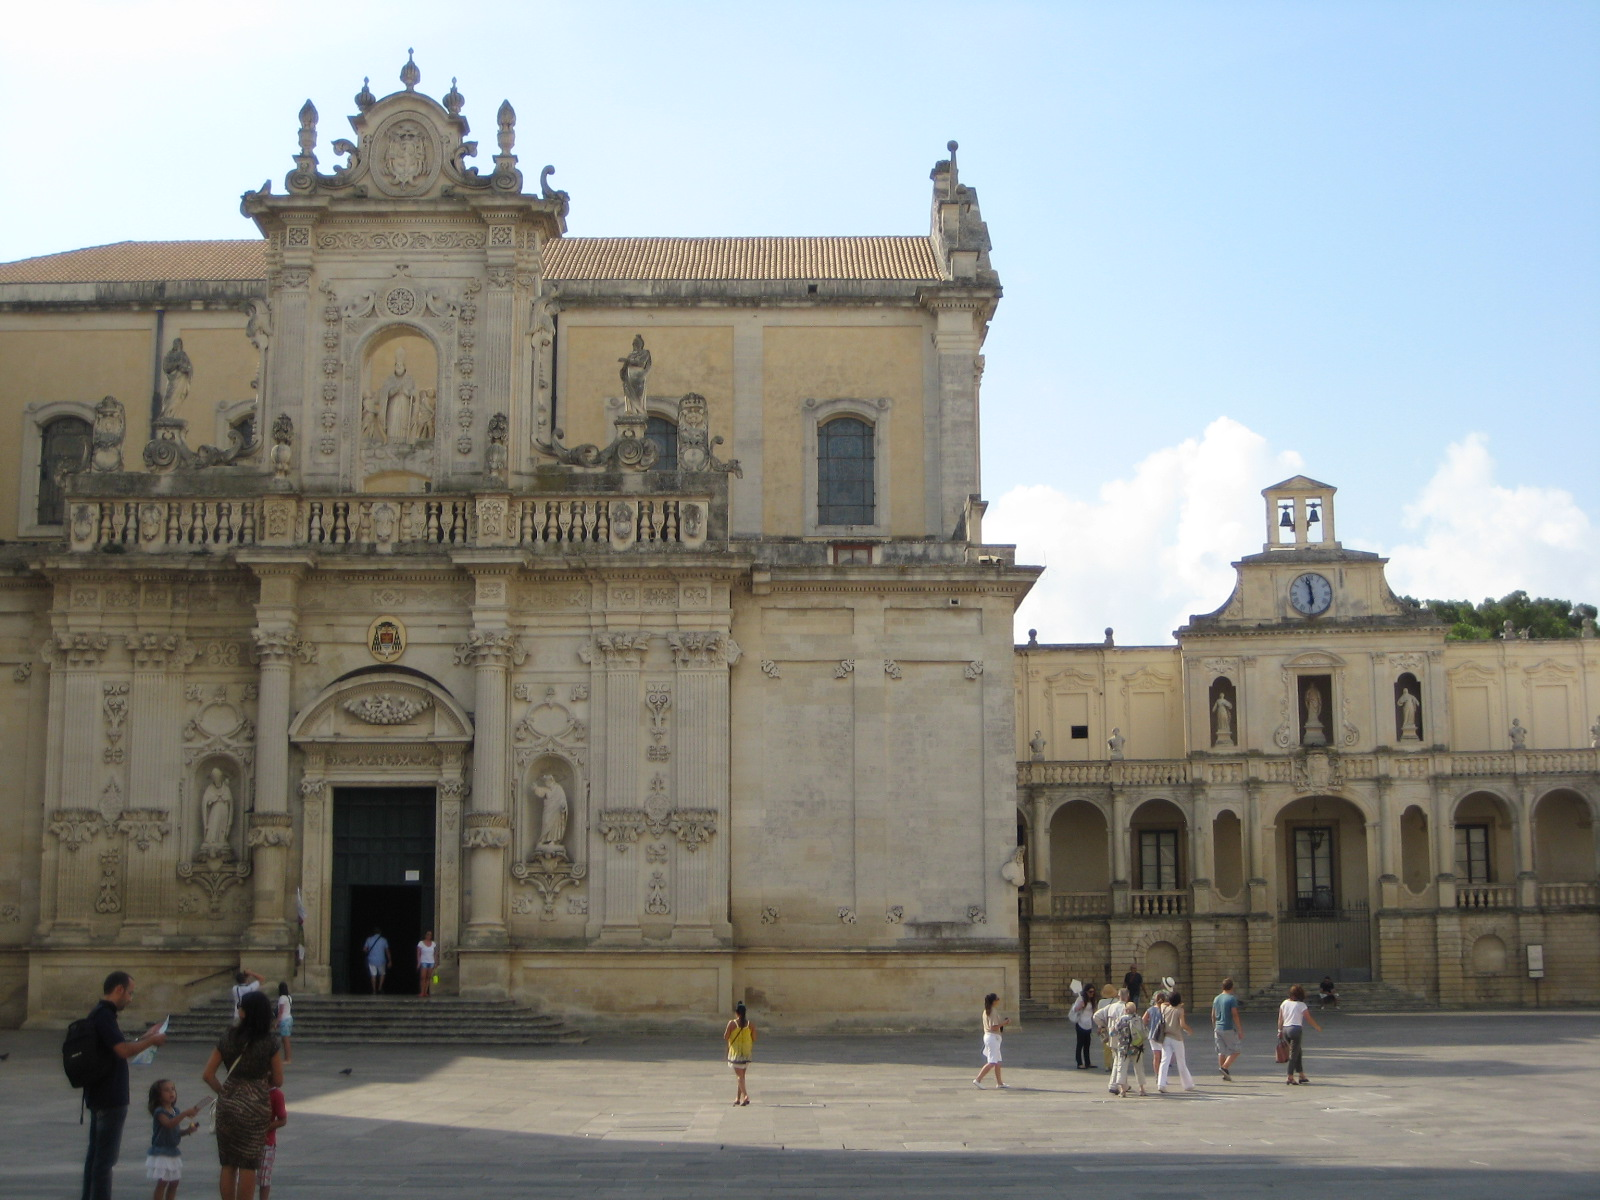 Besonders beeindruckend: die Piazza del Duomo in Lecce